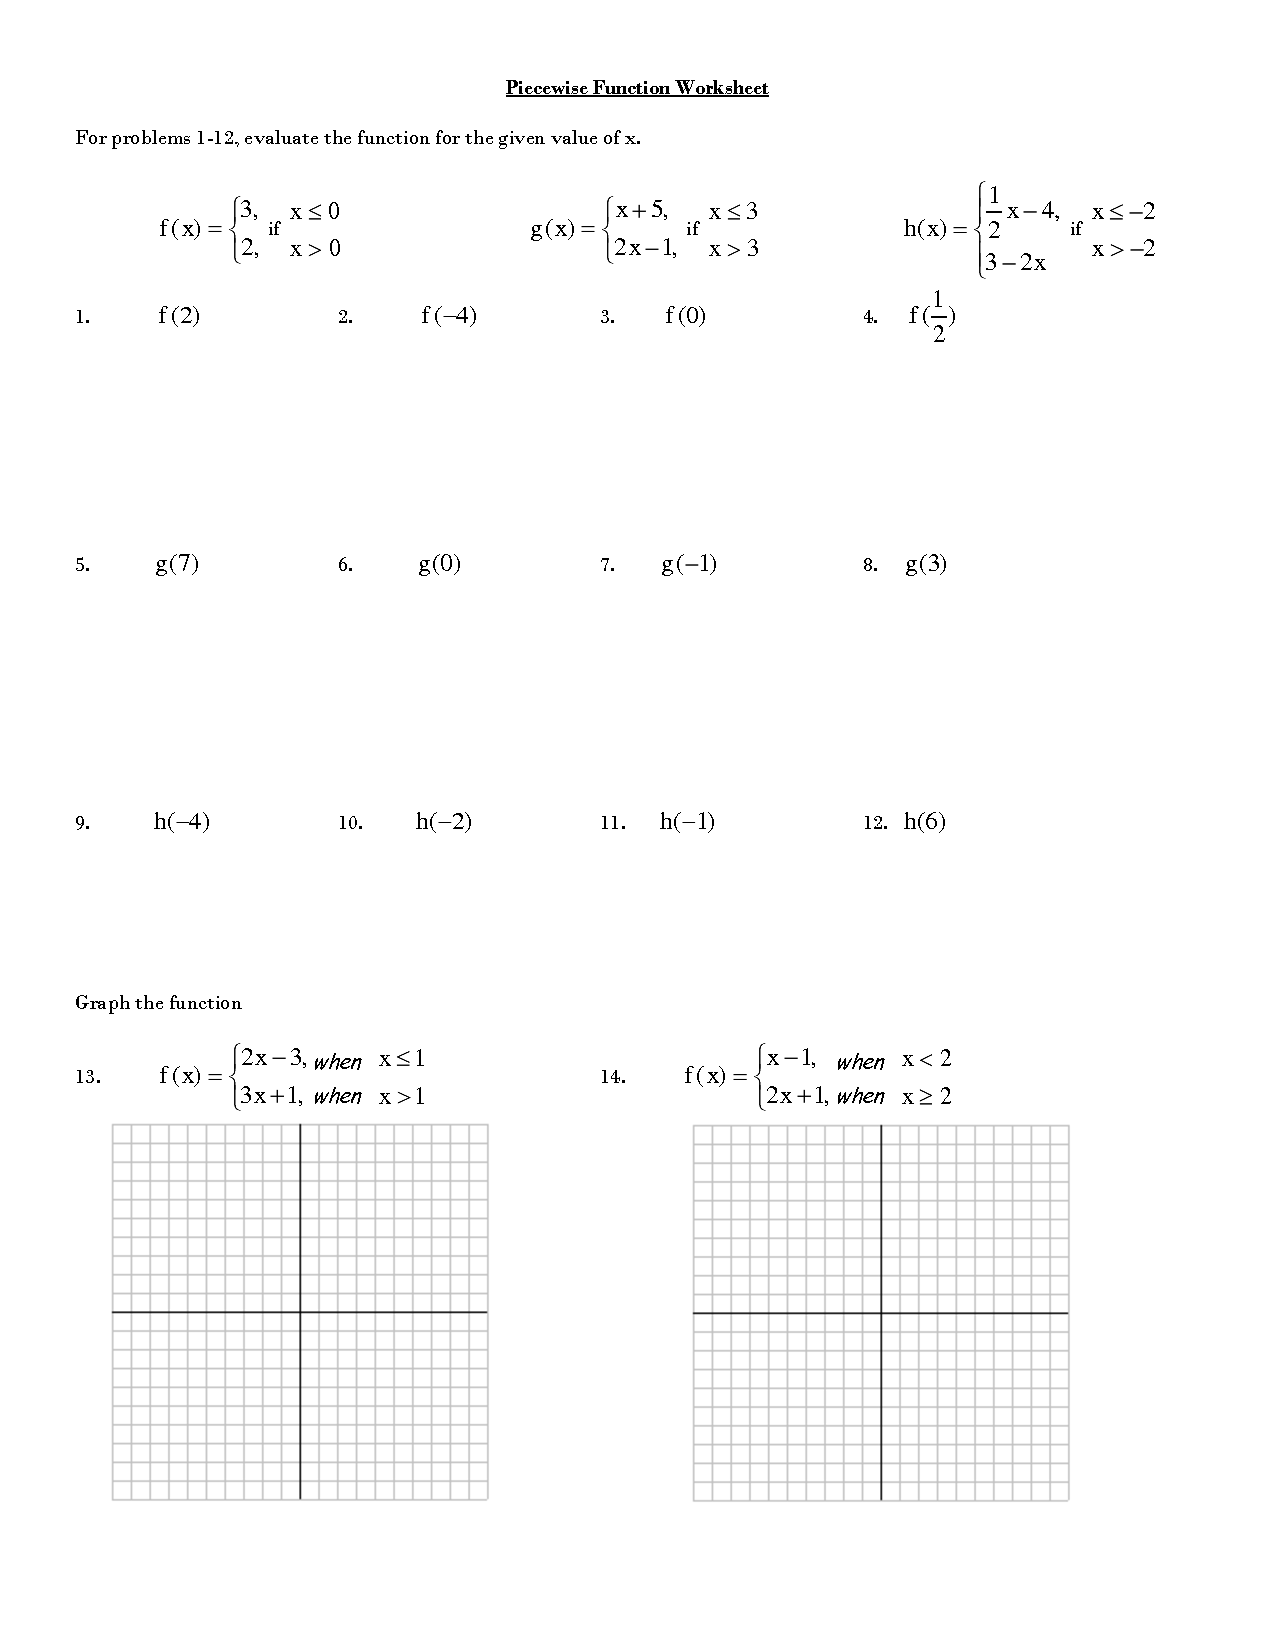 15 Best Images of Evaluating Functions Worksheets PDF  Piecewise Function Worksheet PDF